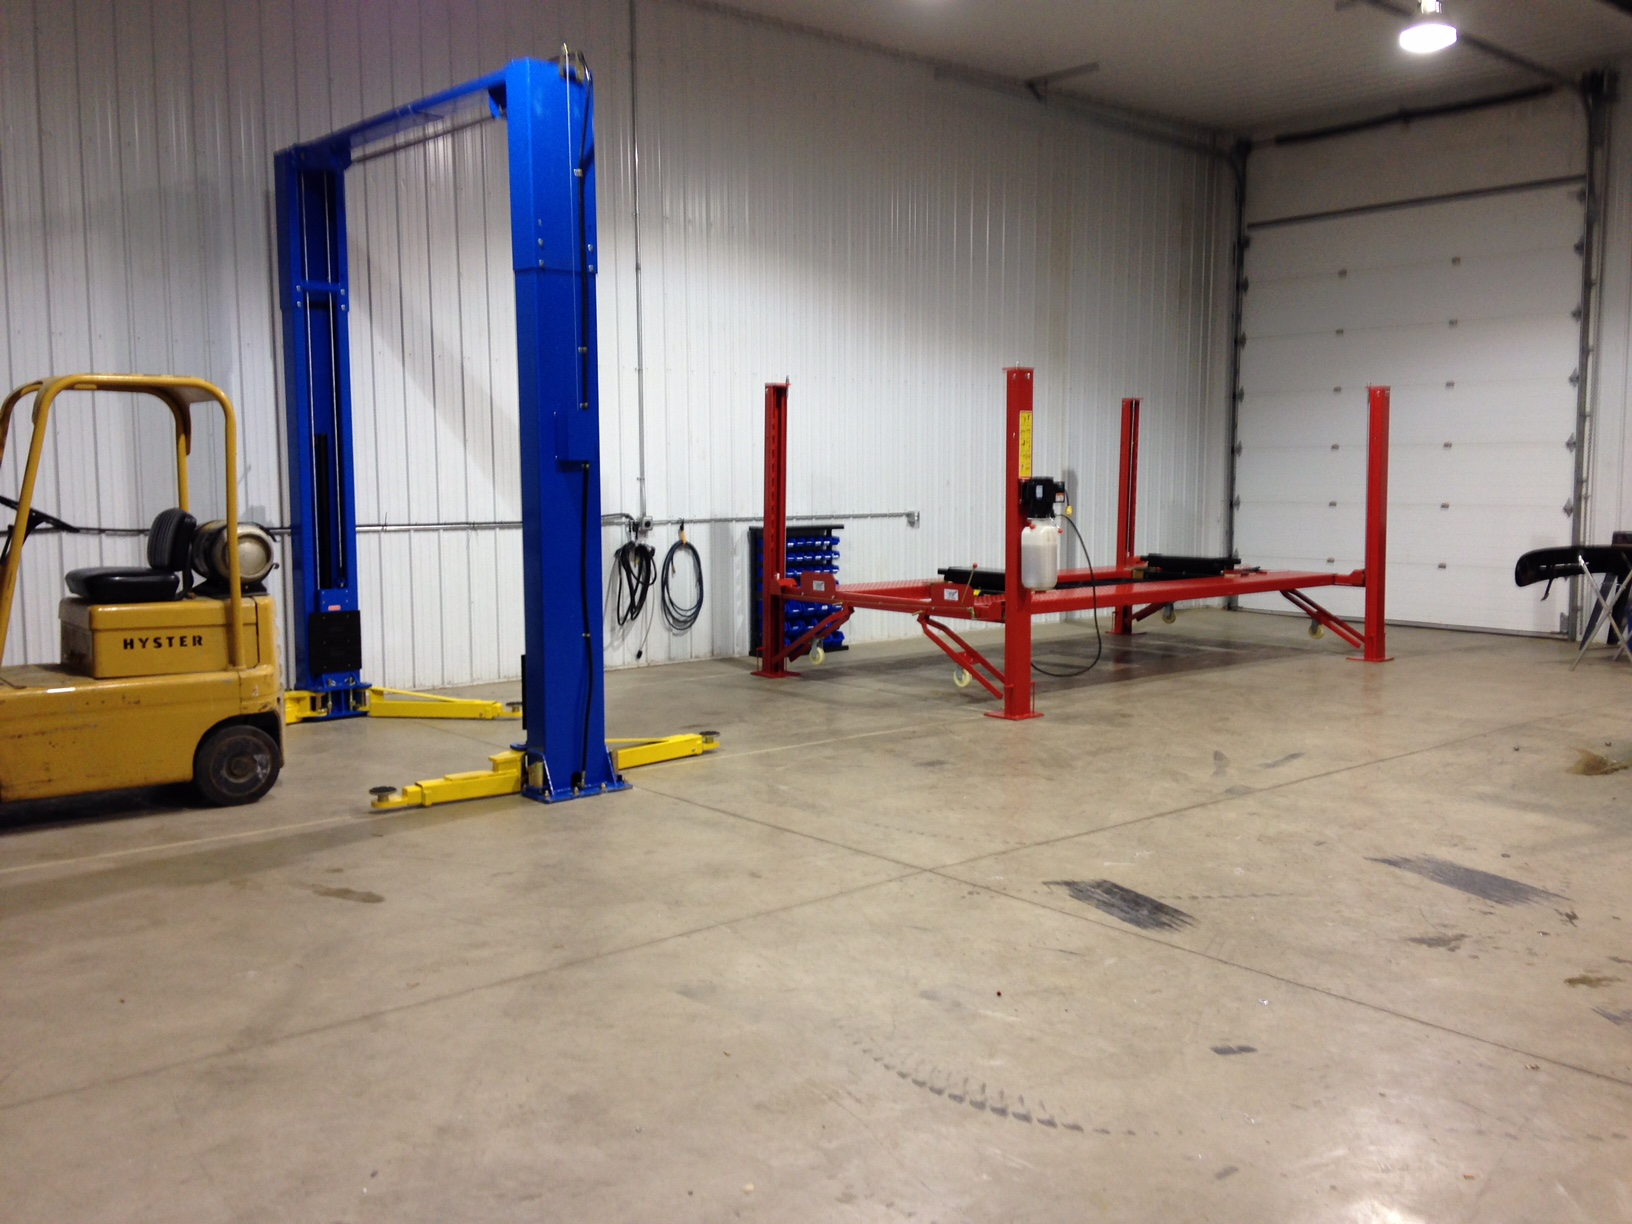 Car Lifts and Home Vehicle Maintenance - Lift King - Hydraulic Lifts in Calgary